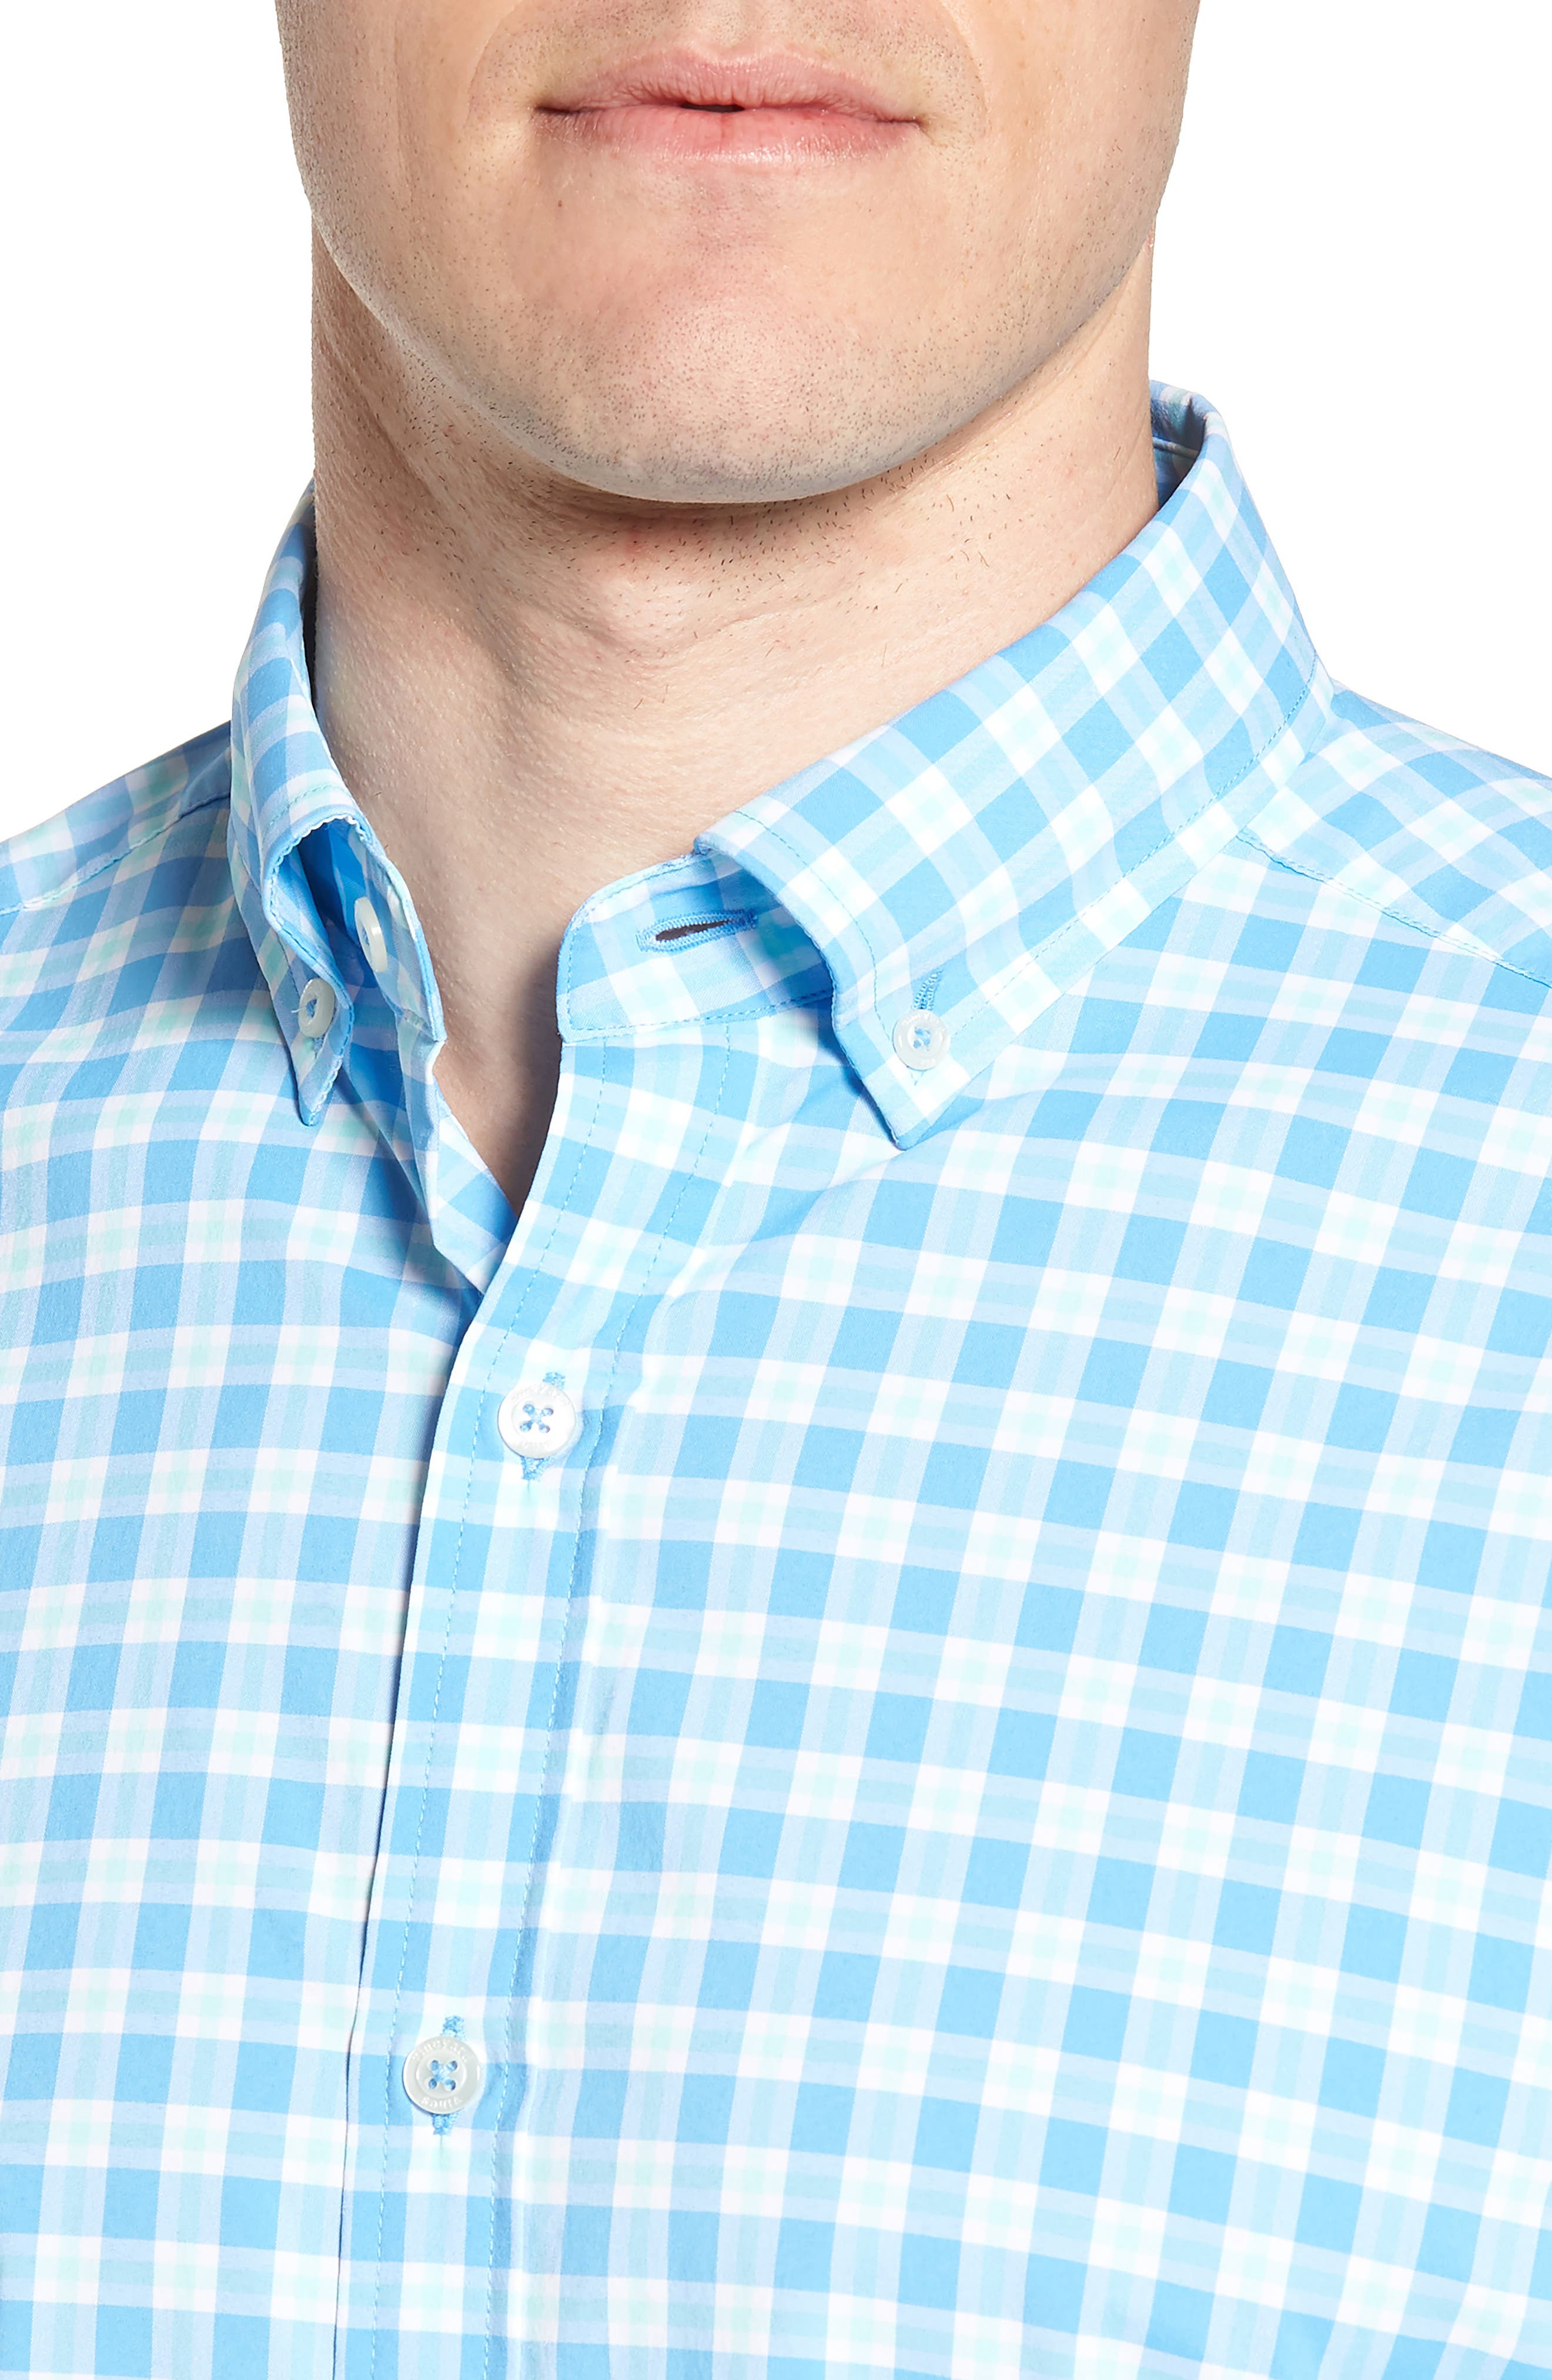 Ocean Beach Classic Fit Stretch Check Sport Shirt,                             Alternate thumbnail 4, color,                             484